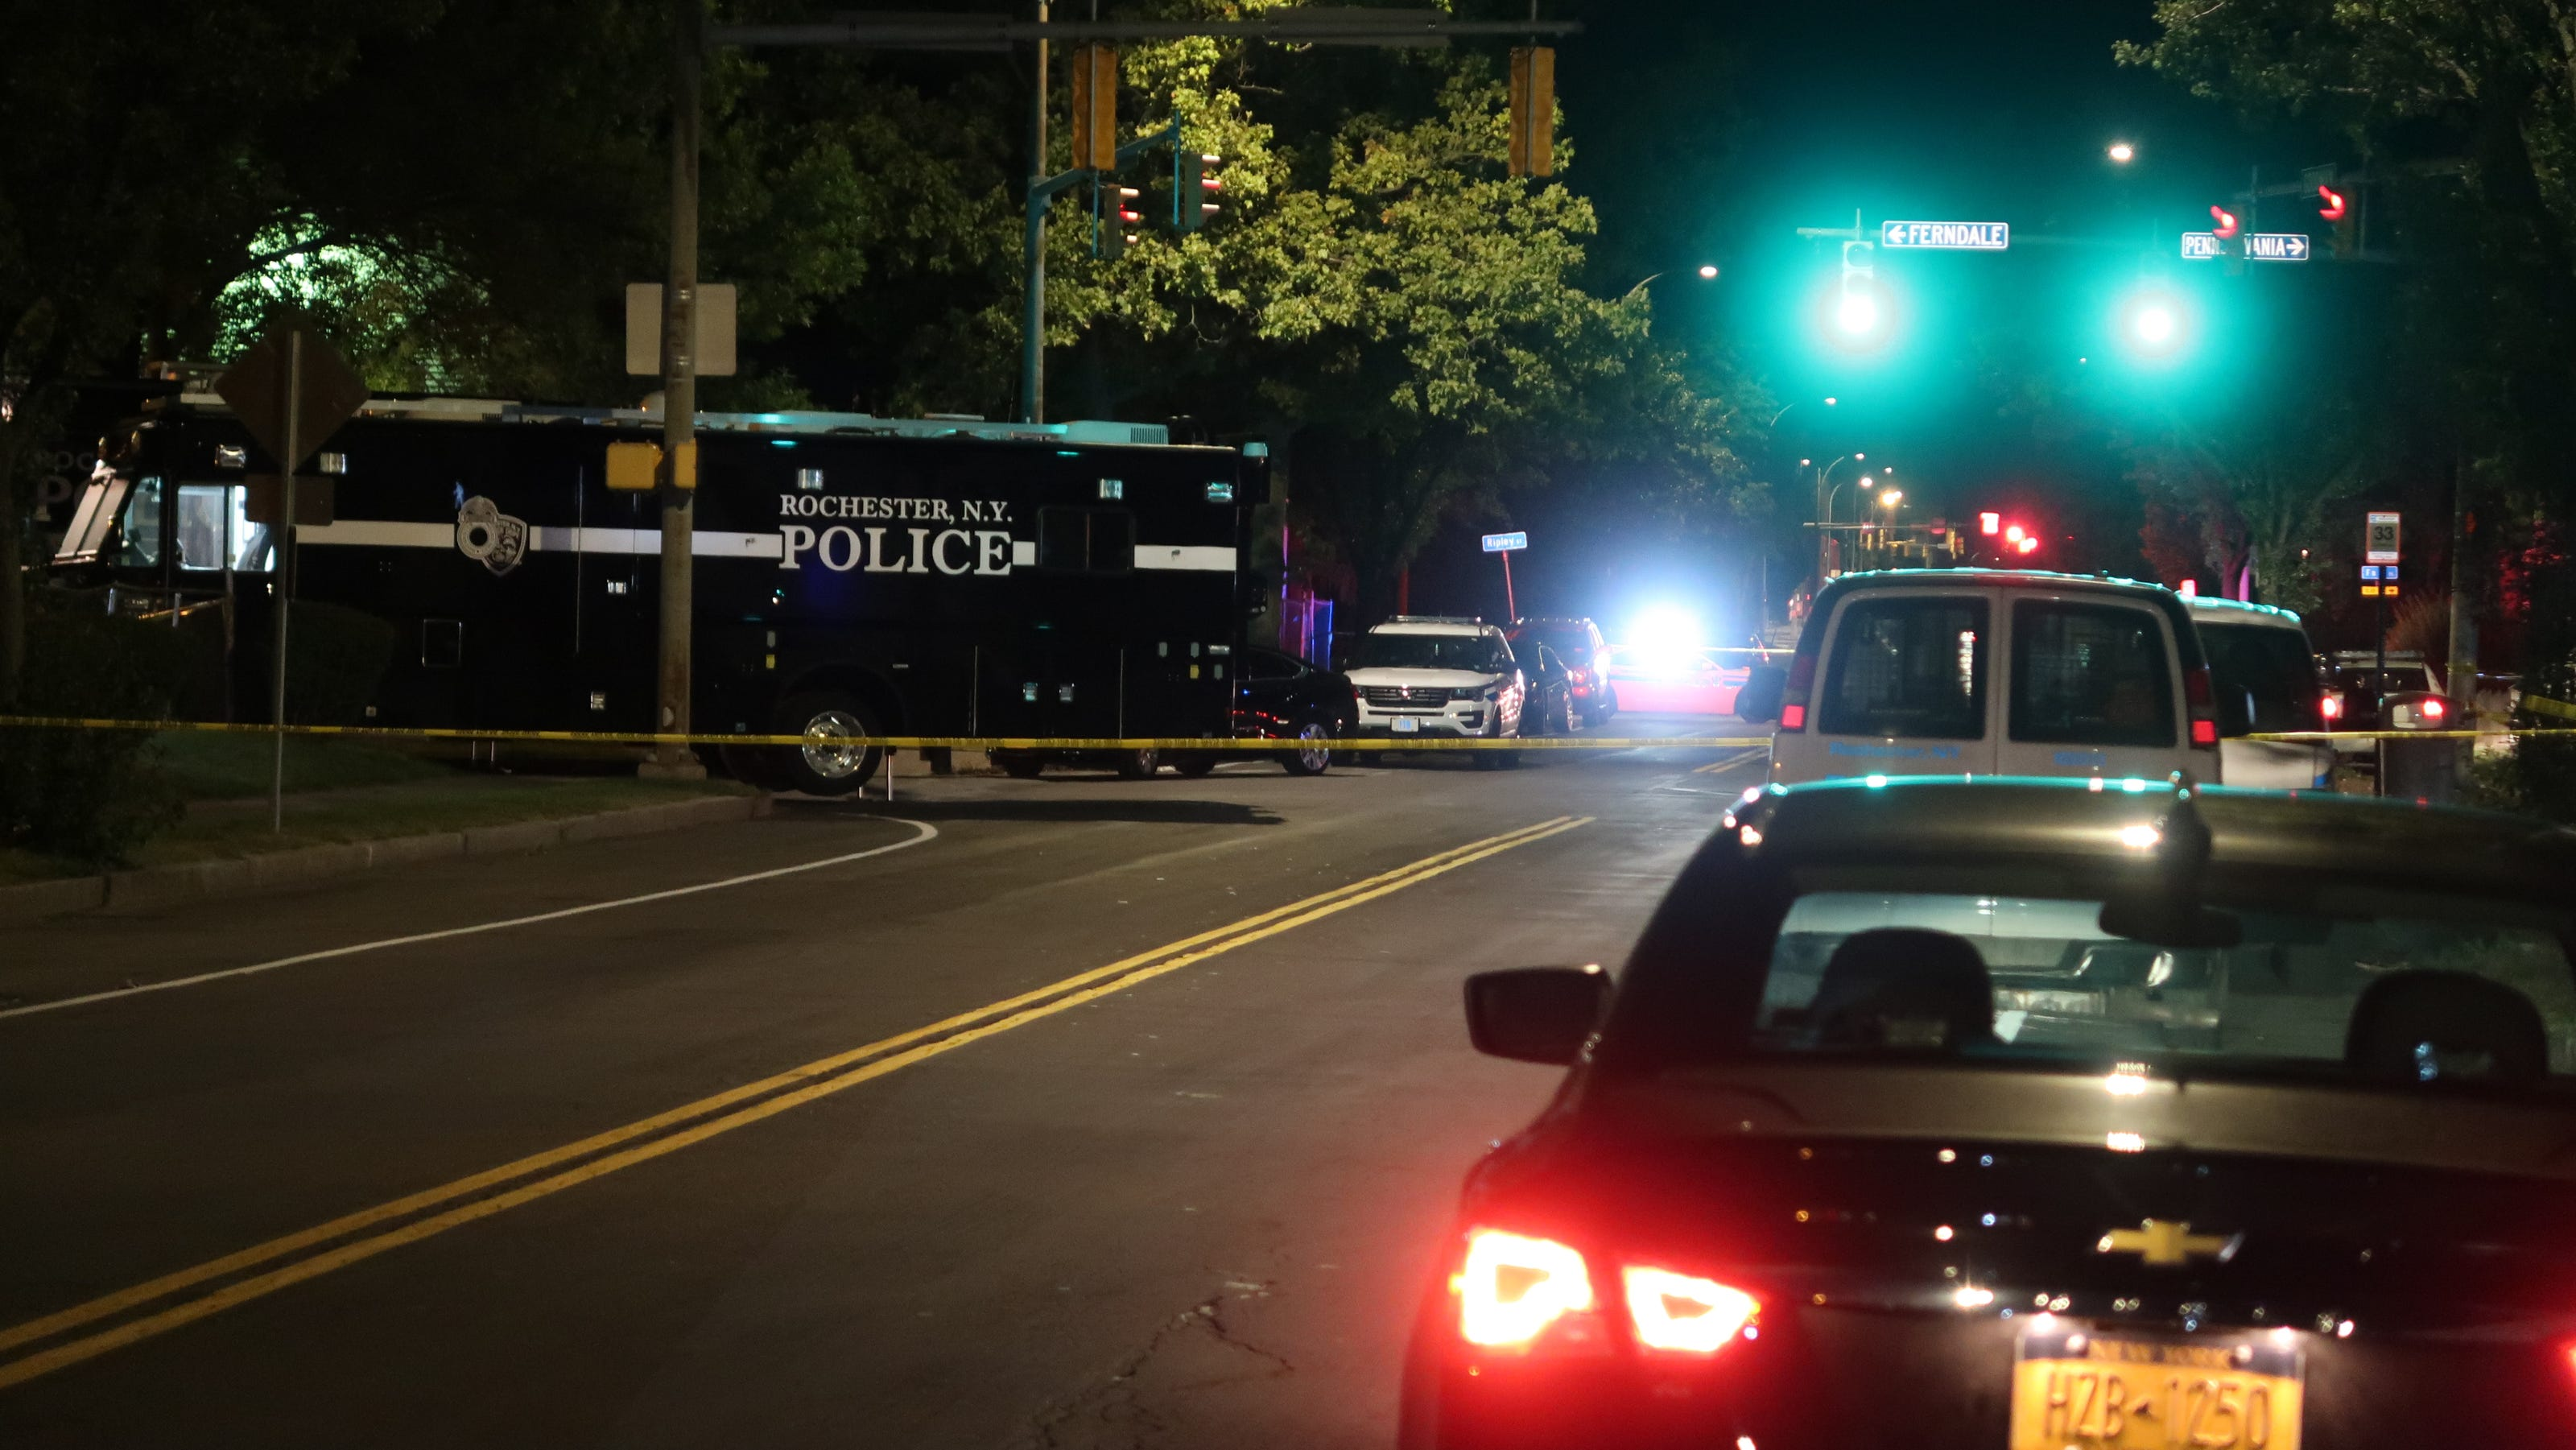 At least 2 dead, 14 wounded in shooting at house party in Rochester, New York, authorities say